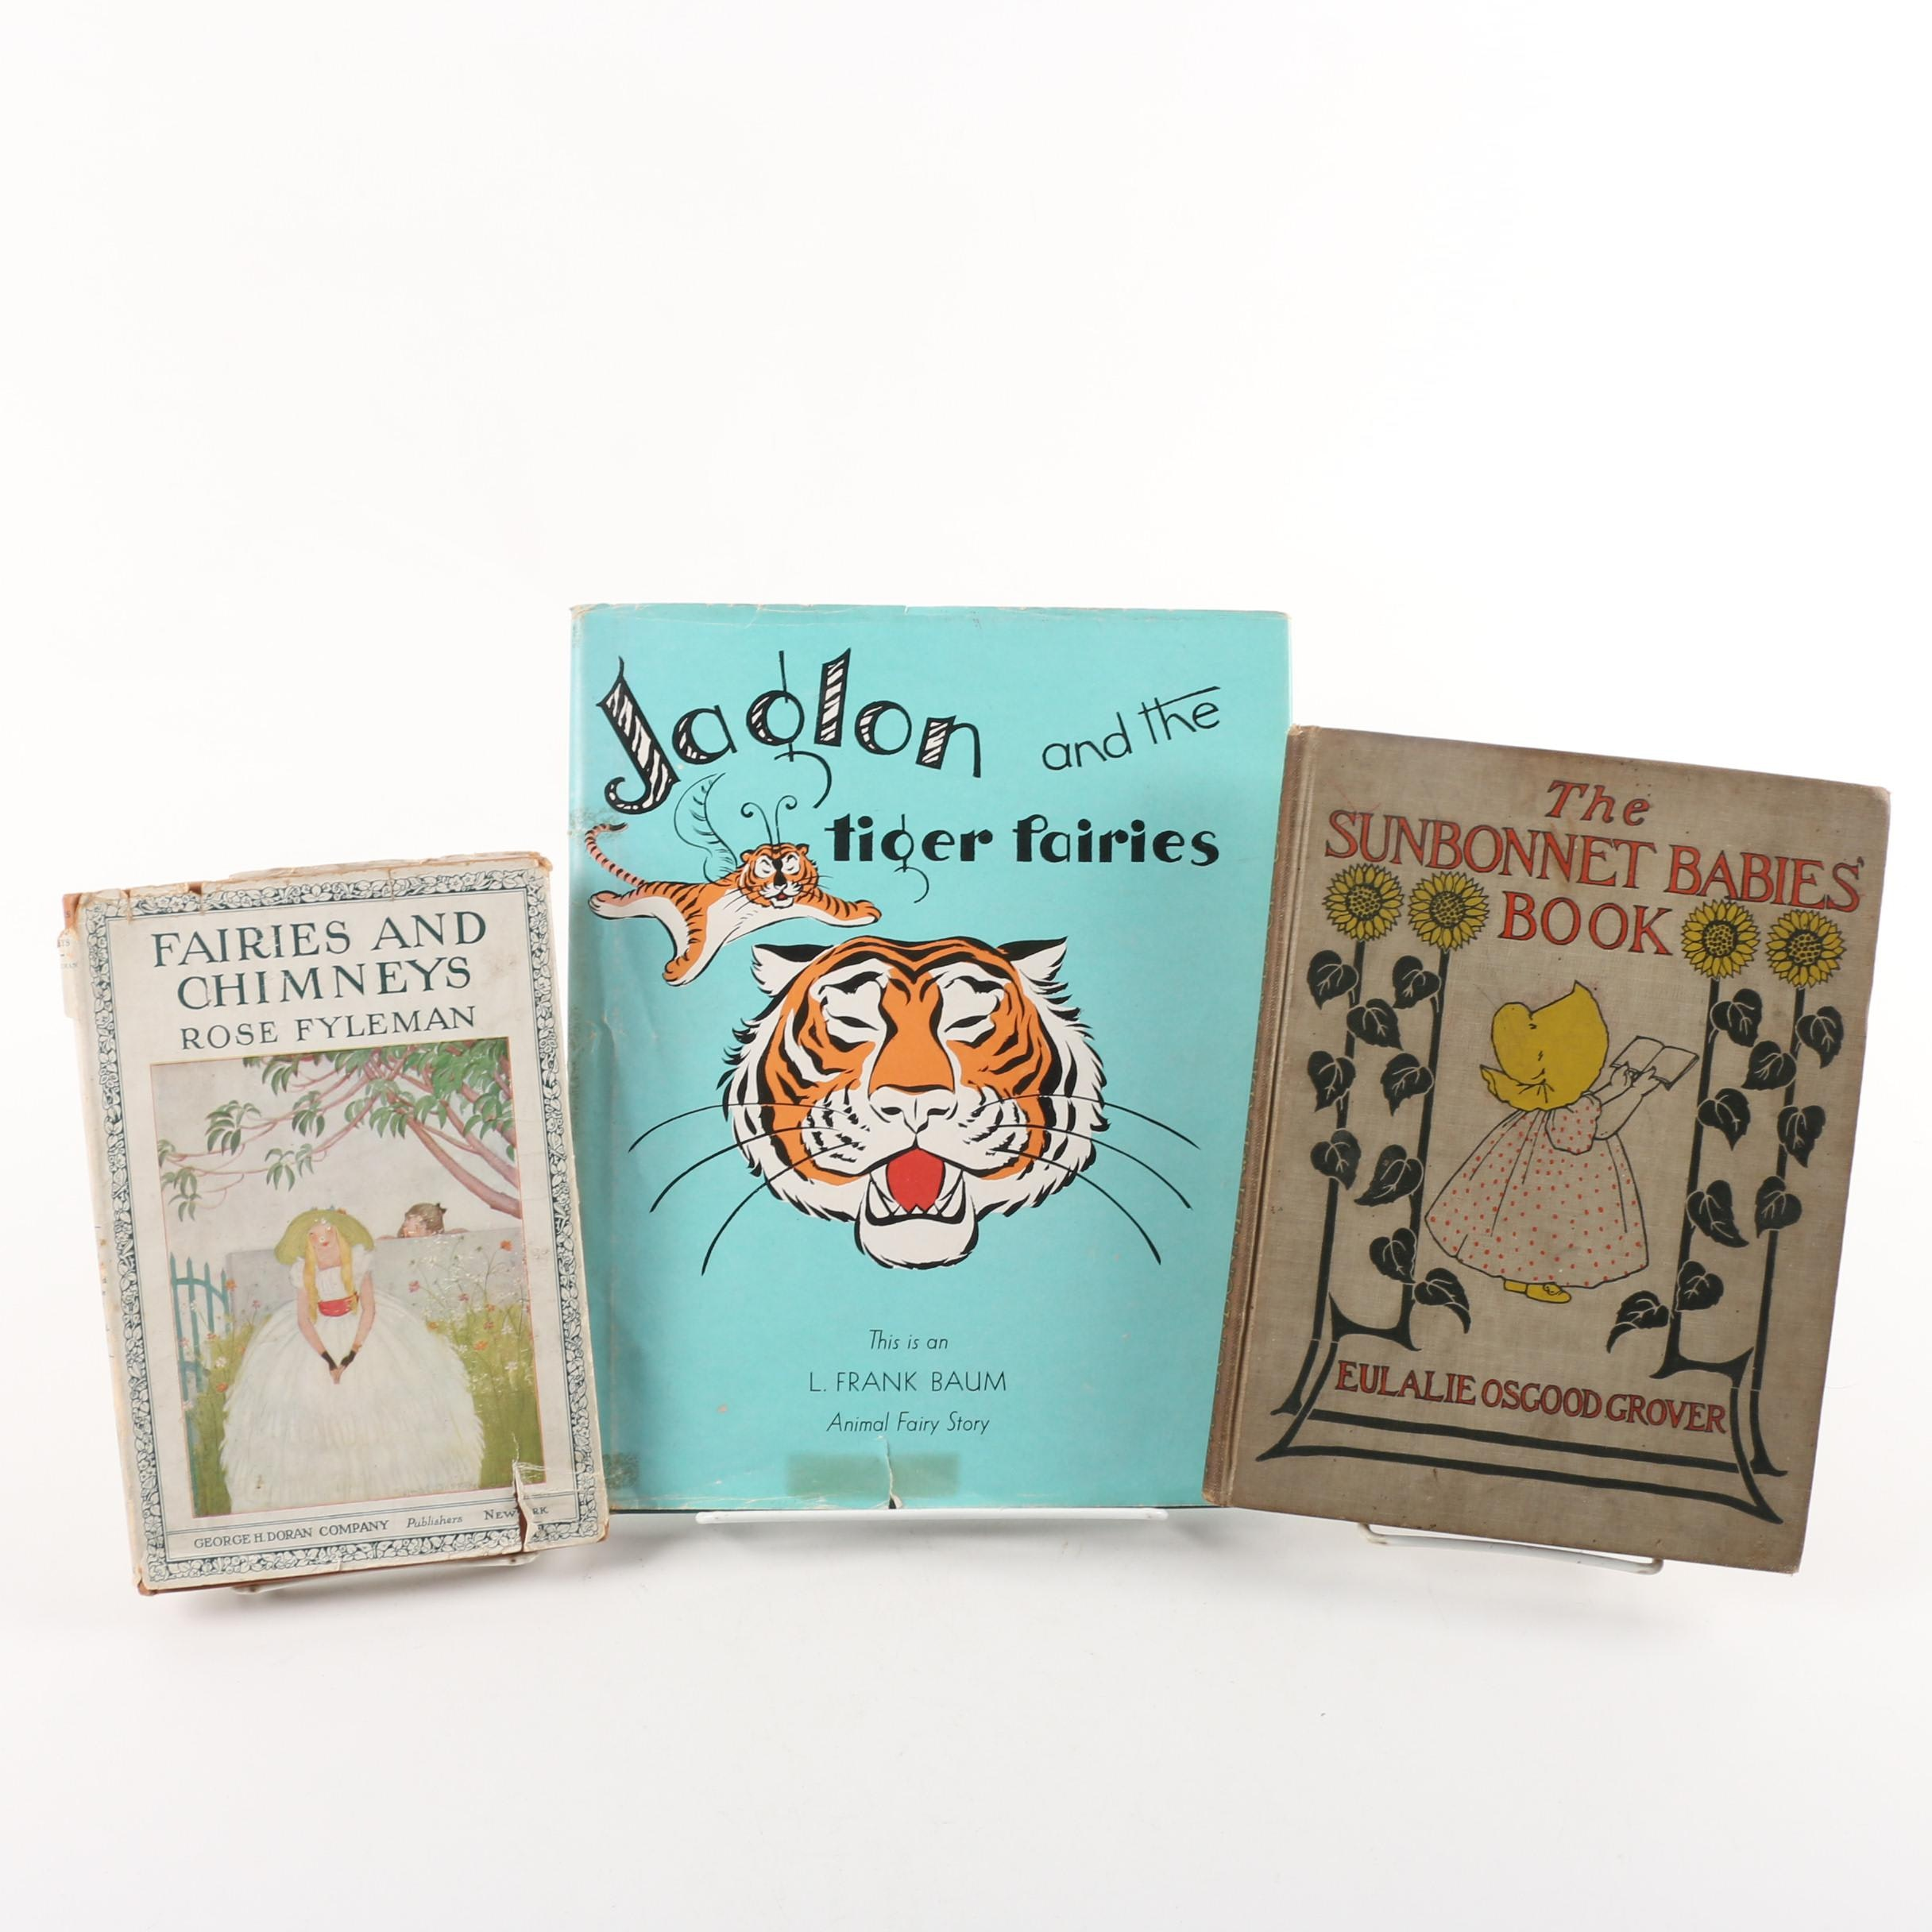 Children's Books including L. Frank Baum and Eulalie Osgood Grover